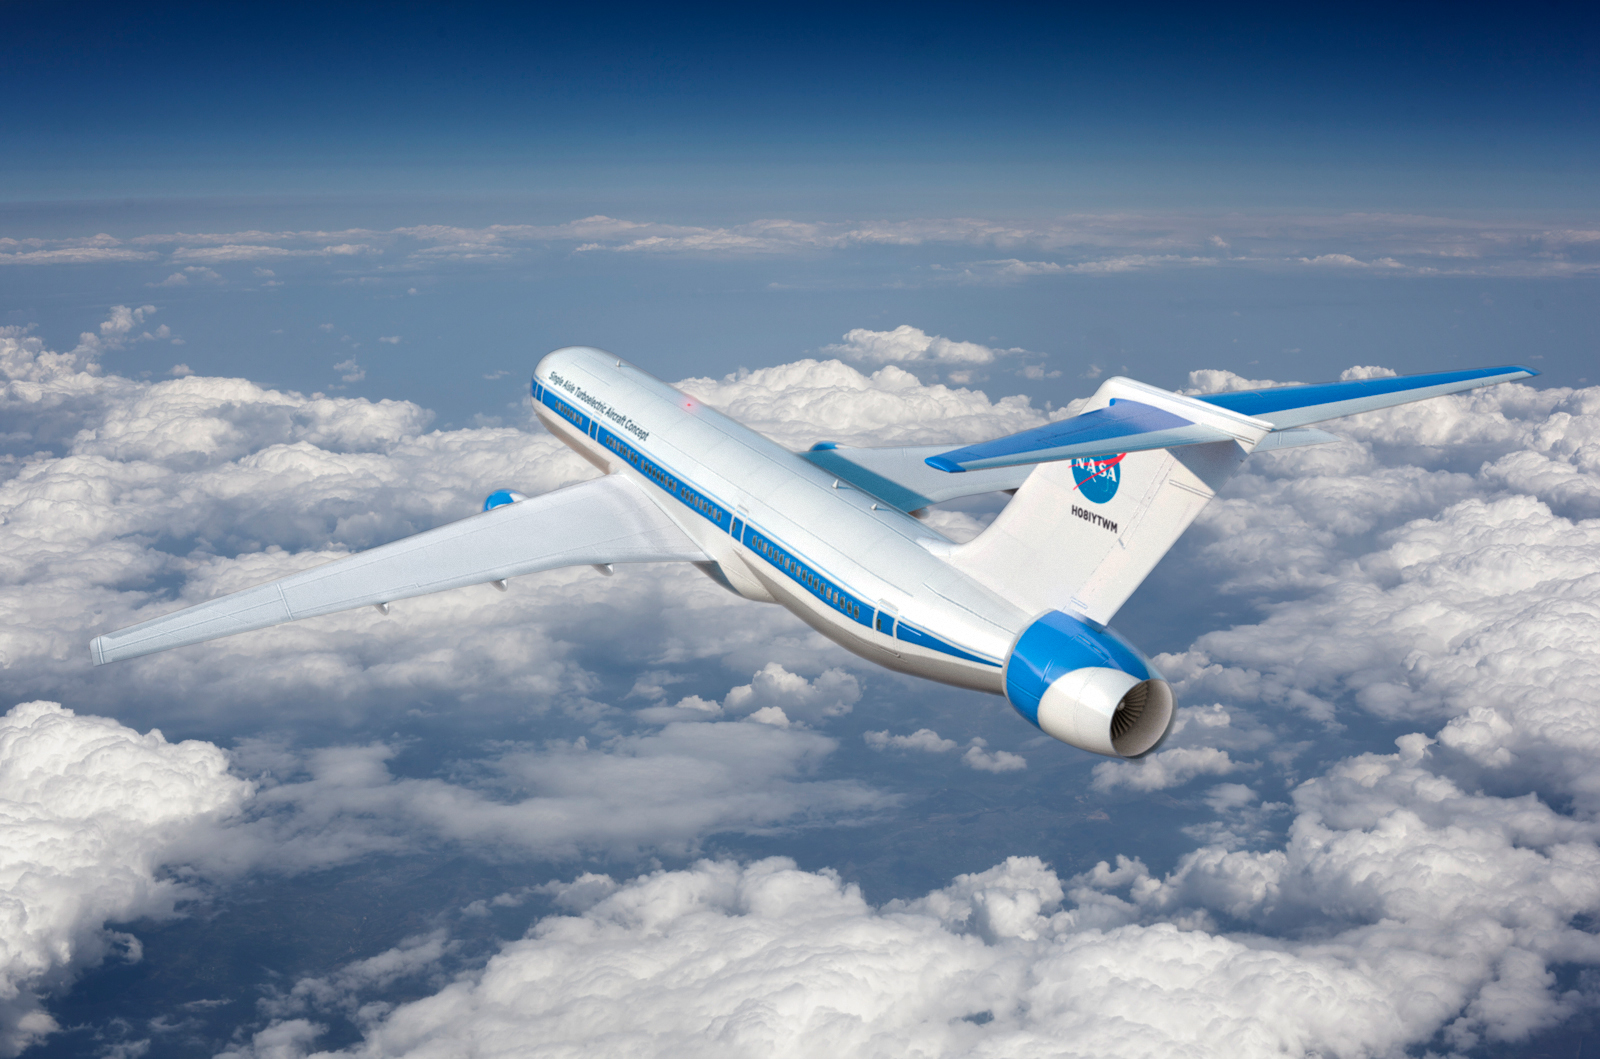 With the recent advances in technology and design aircraft concepts - Hybrid Electric Concept Plane